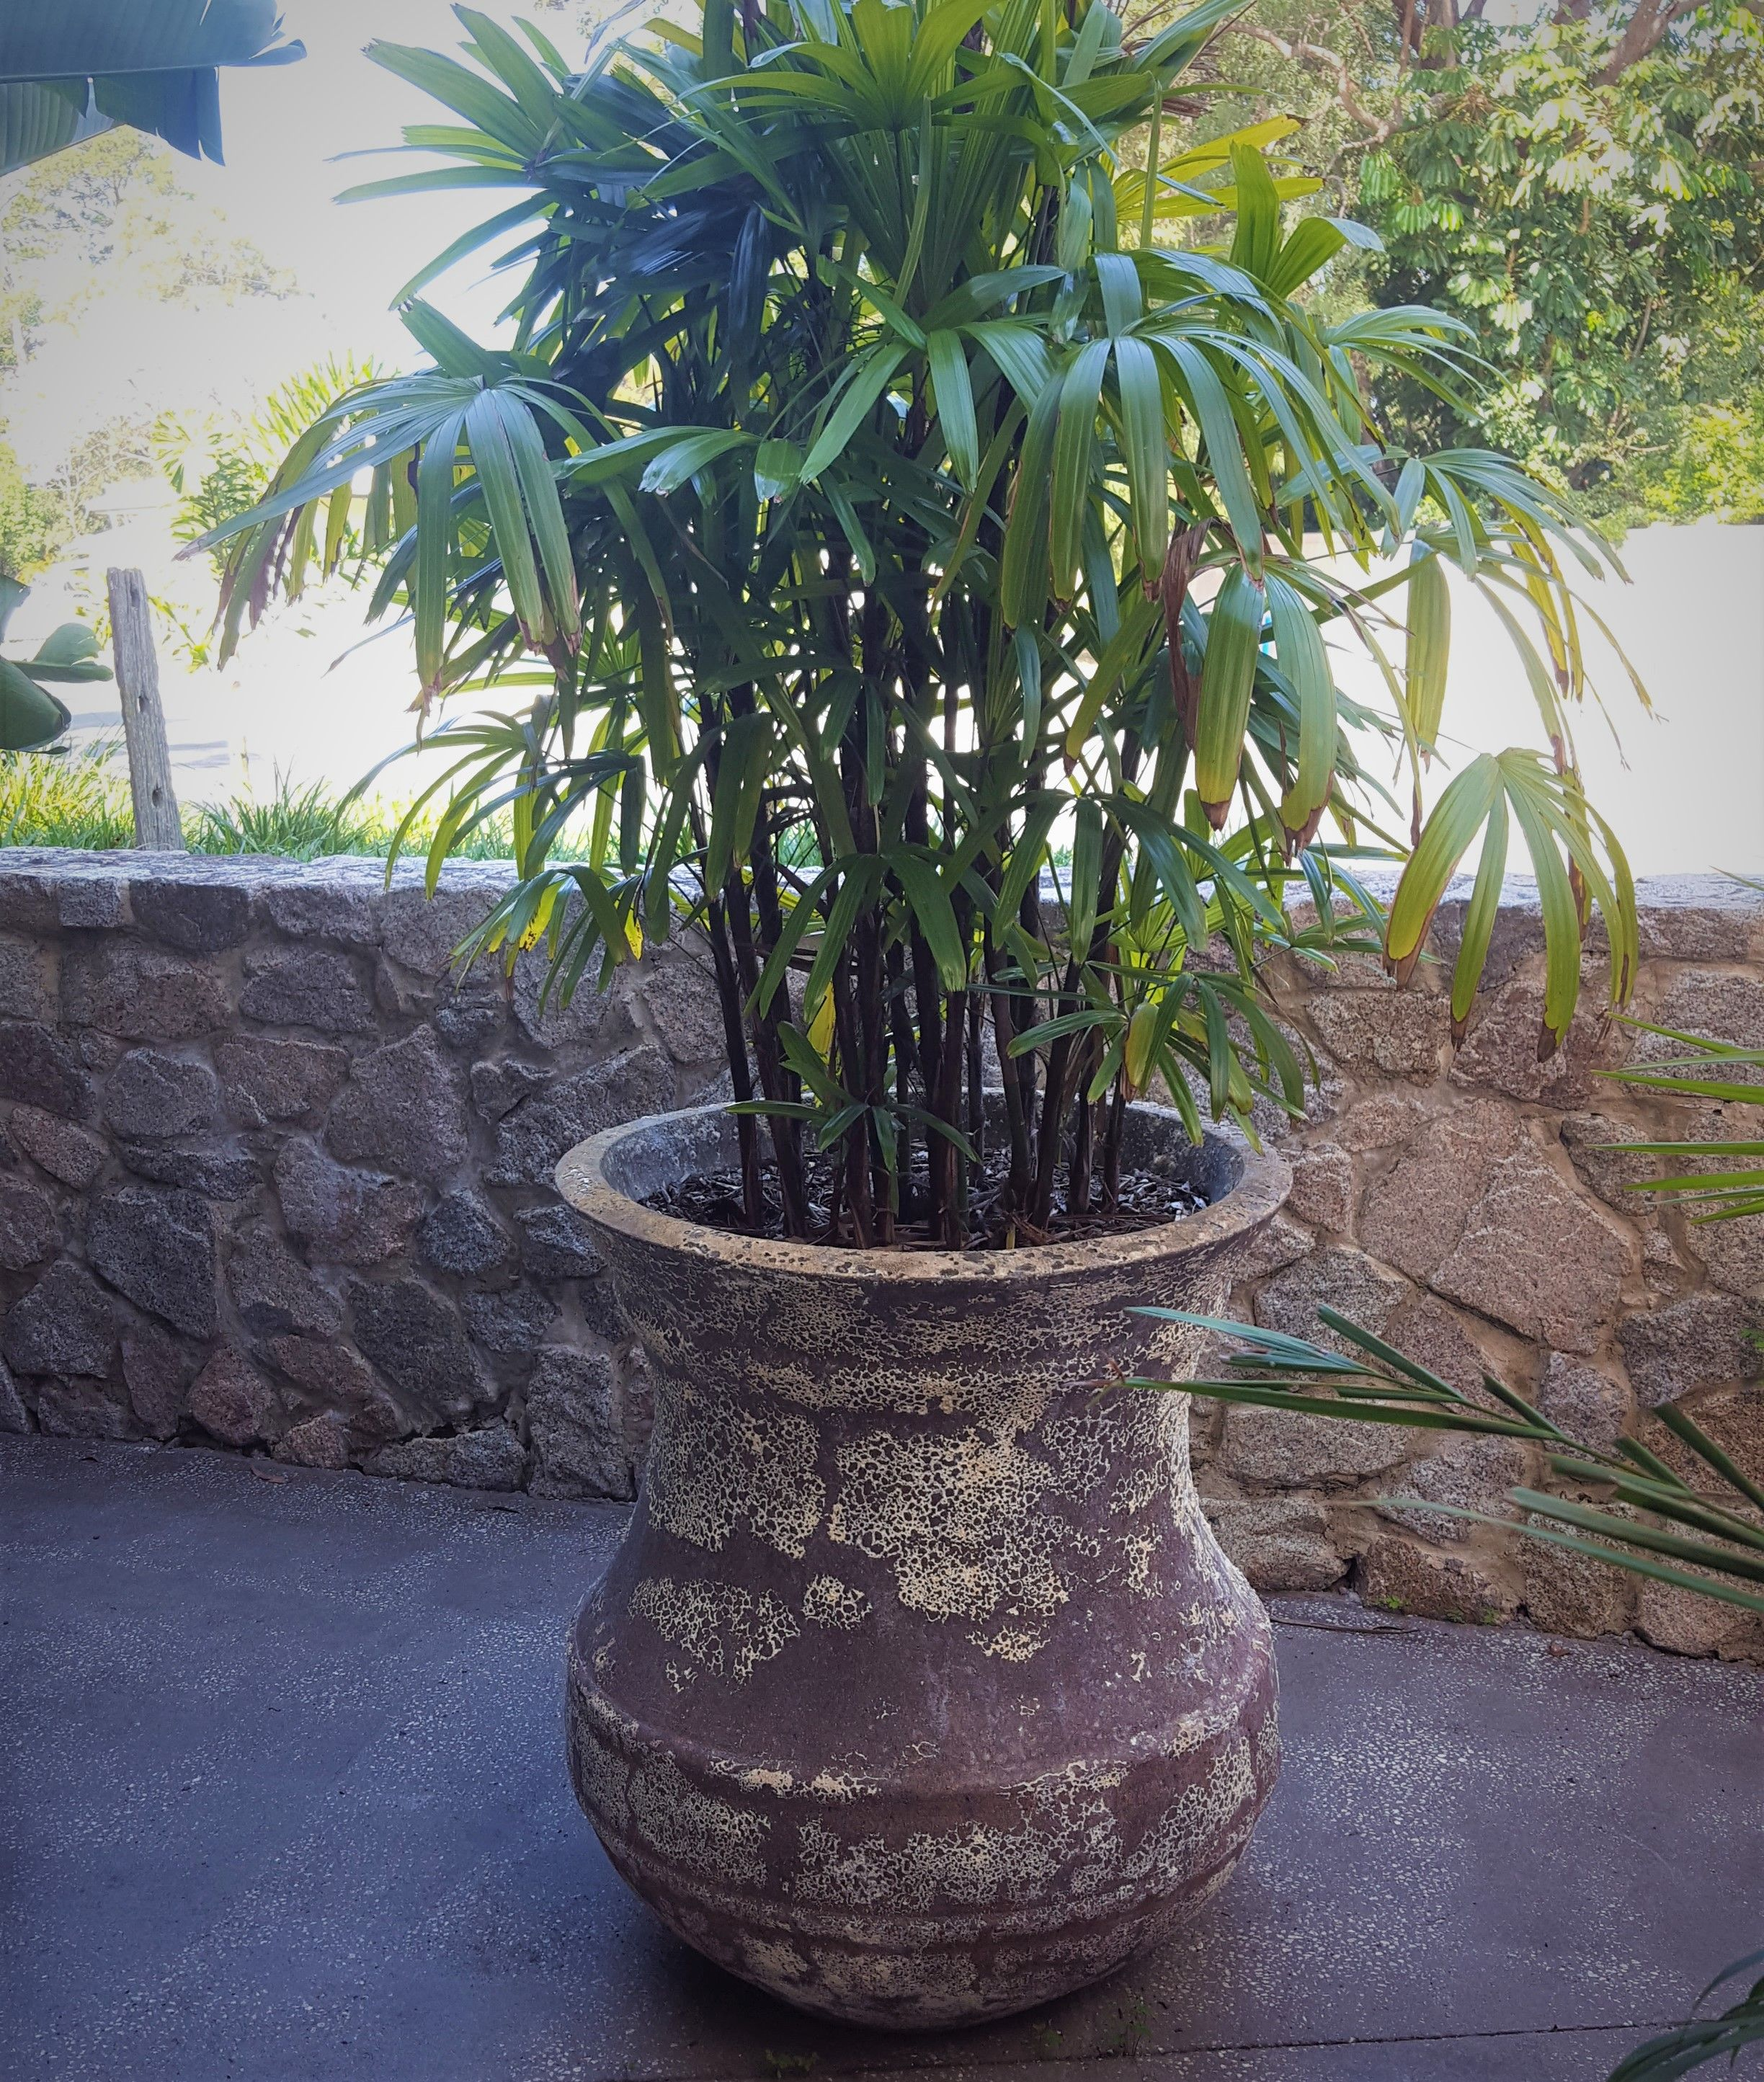 Atlantis Pluto Pot At The Beachmere Hotel, Qld. Supplied